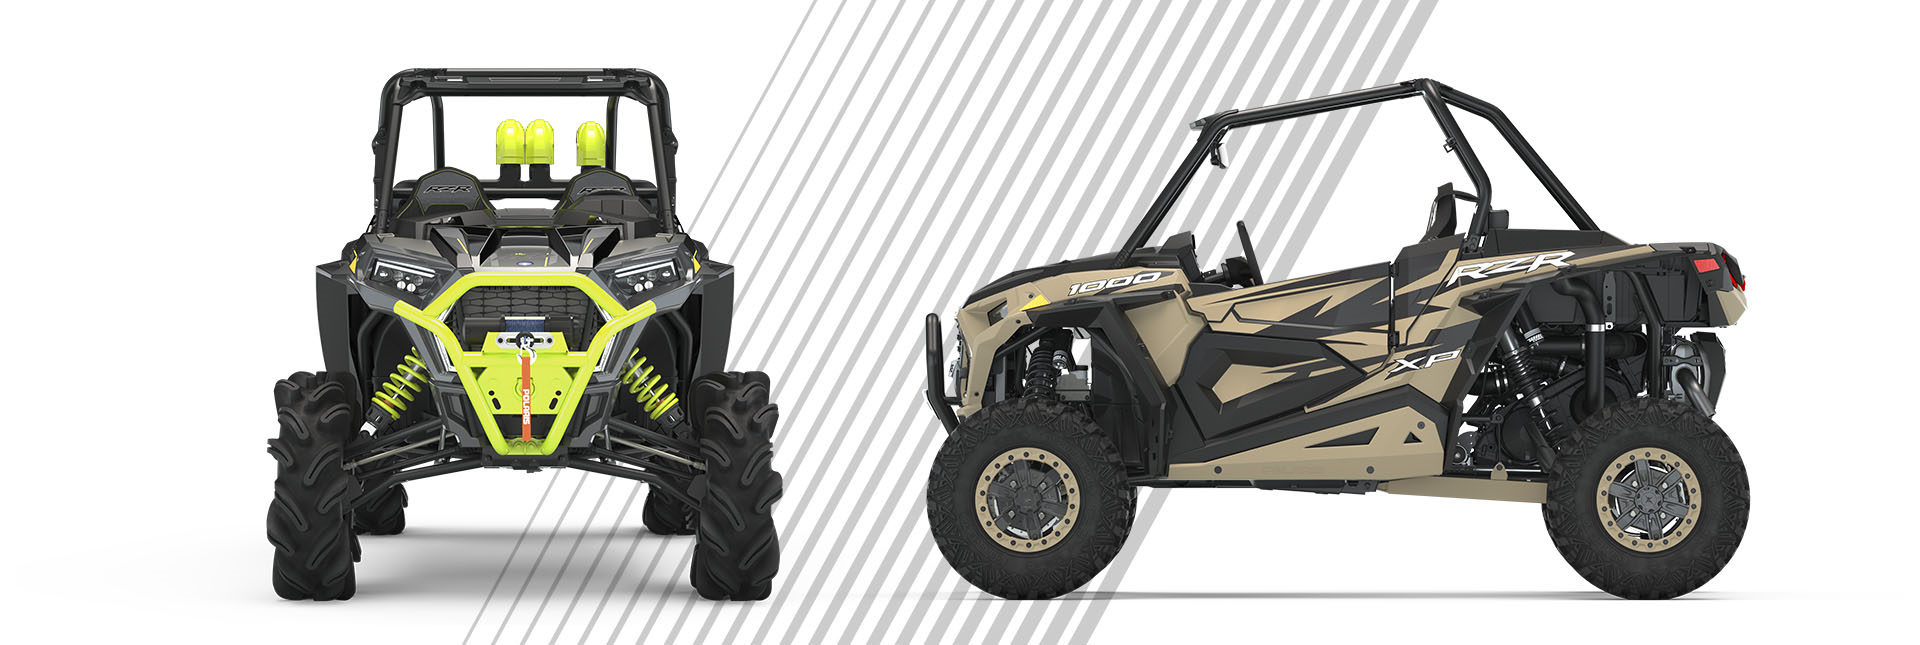 front and side view of Special Editions RZR vehicles